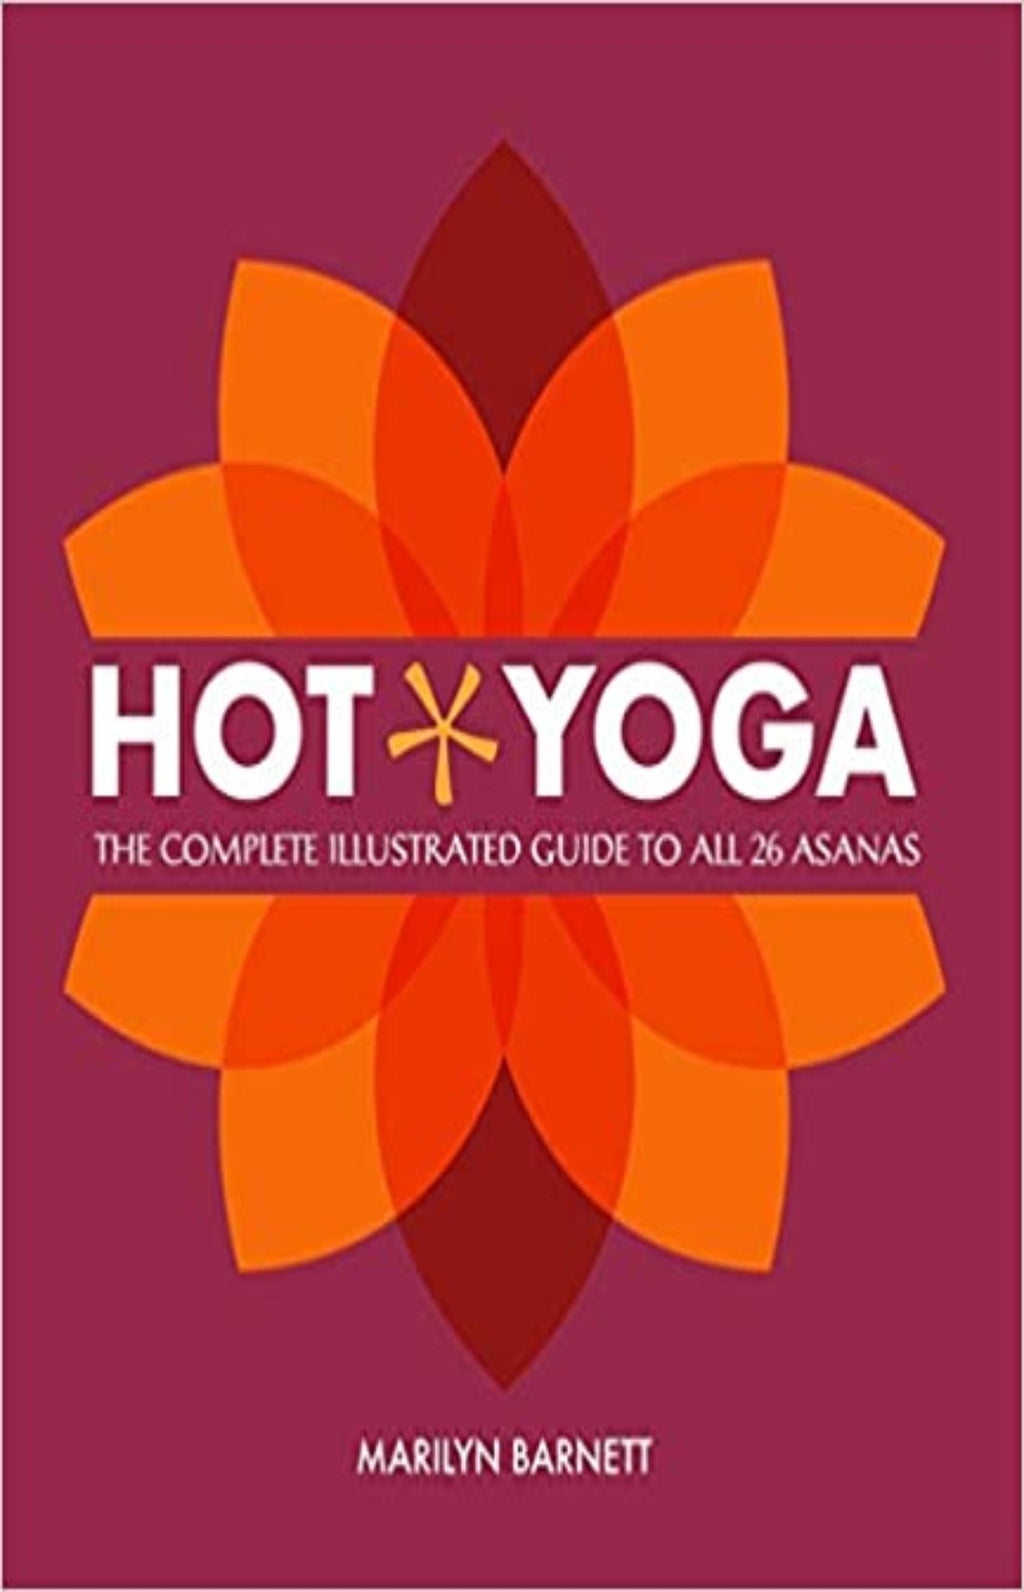 Hot Yoga: The Complete Illustrated Guide to all 26 Asanas